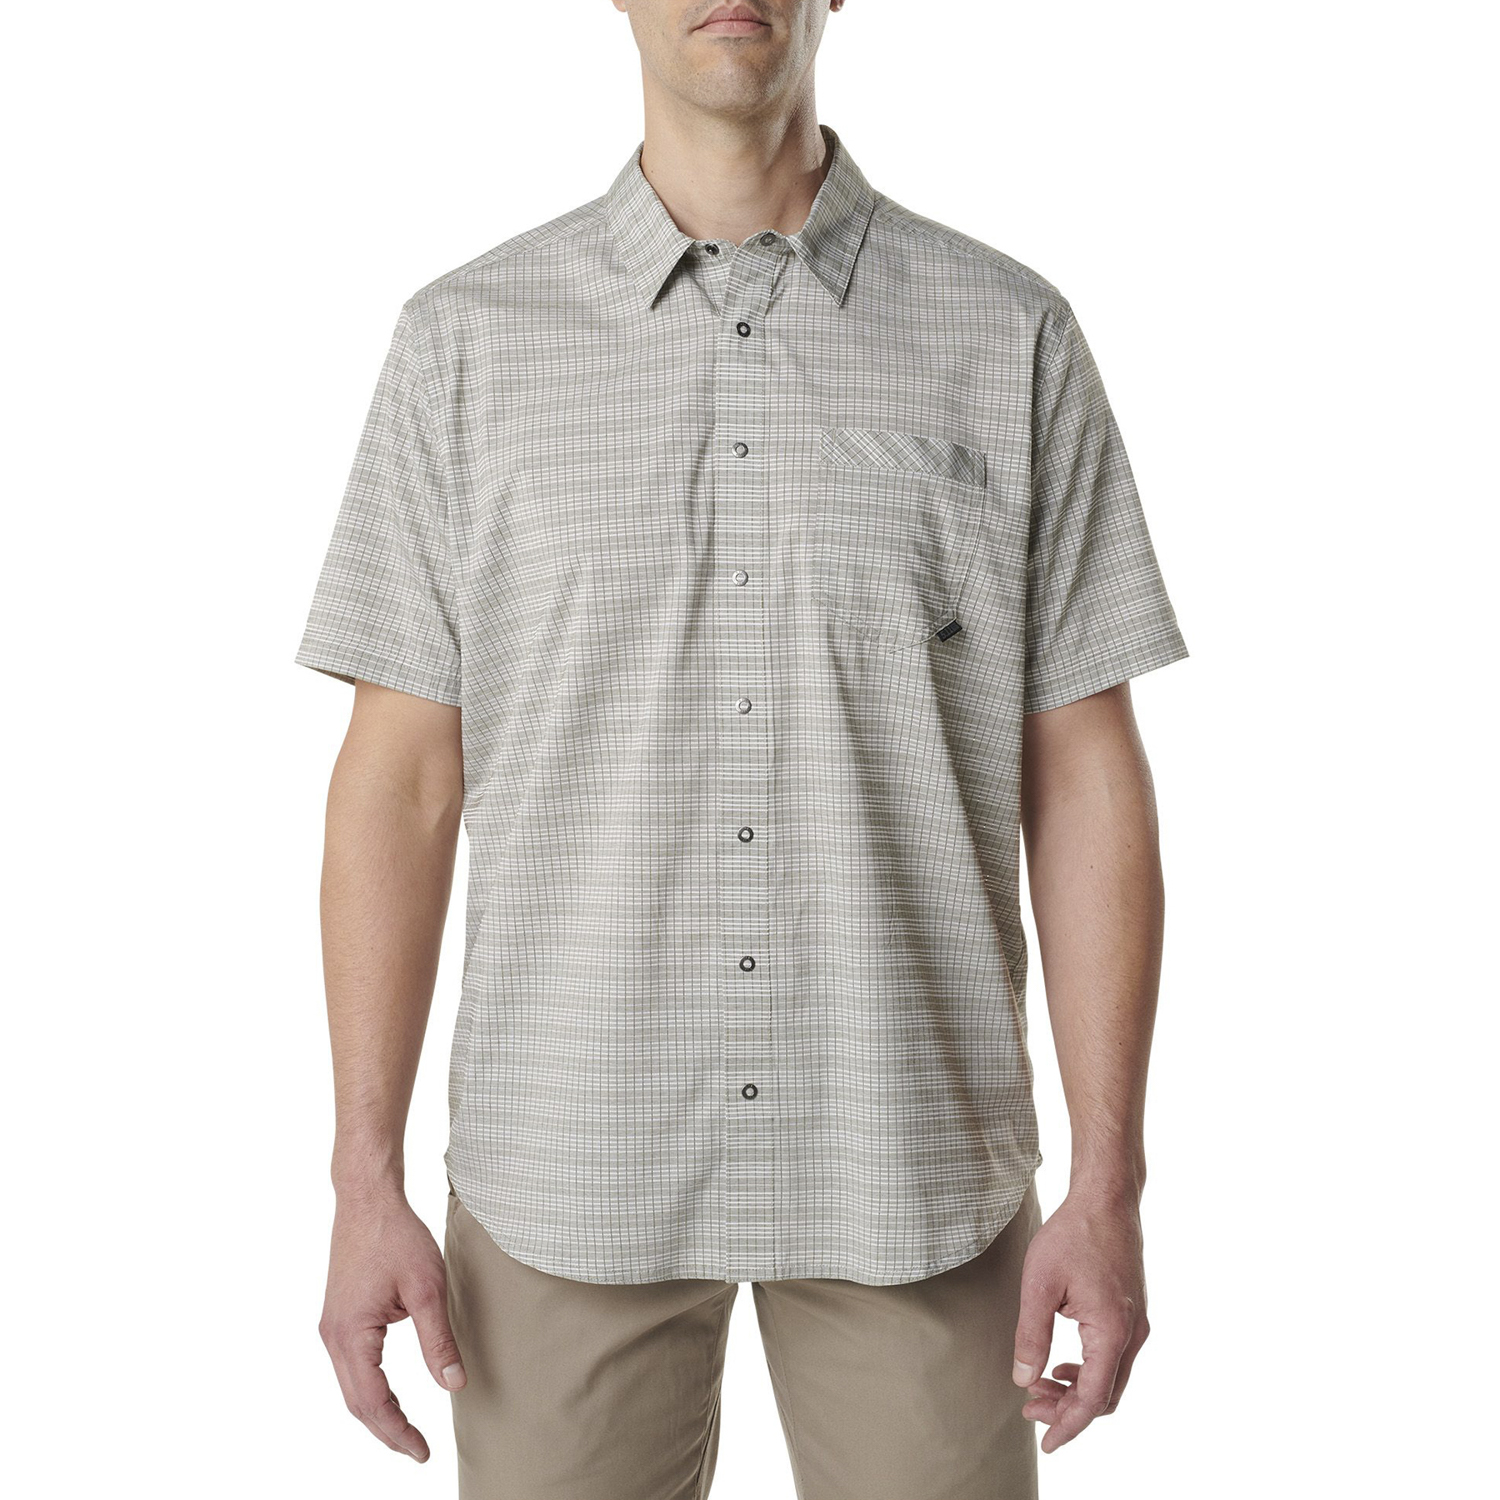 5.11 Tactical Inteprid Shirt